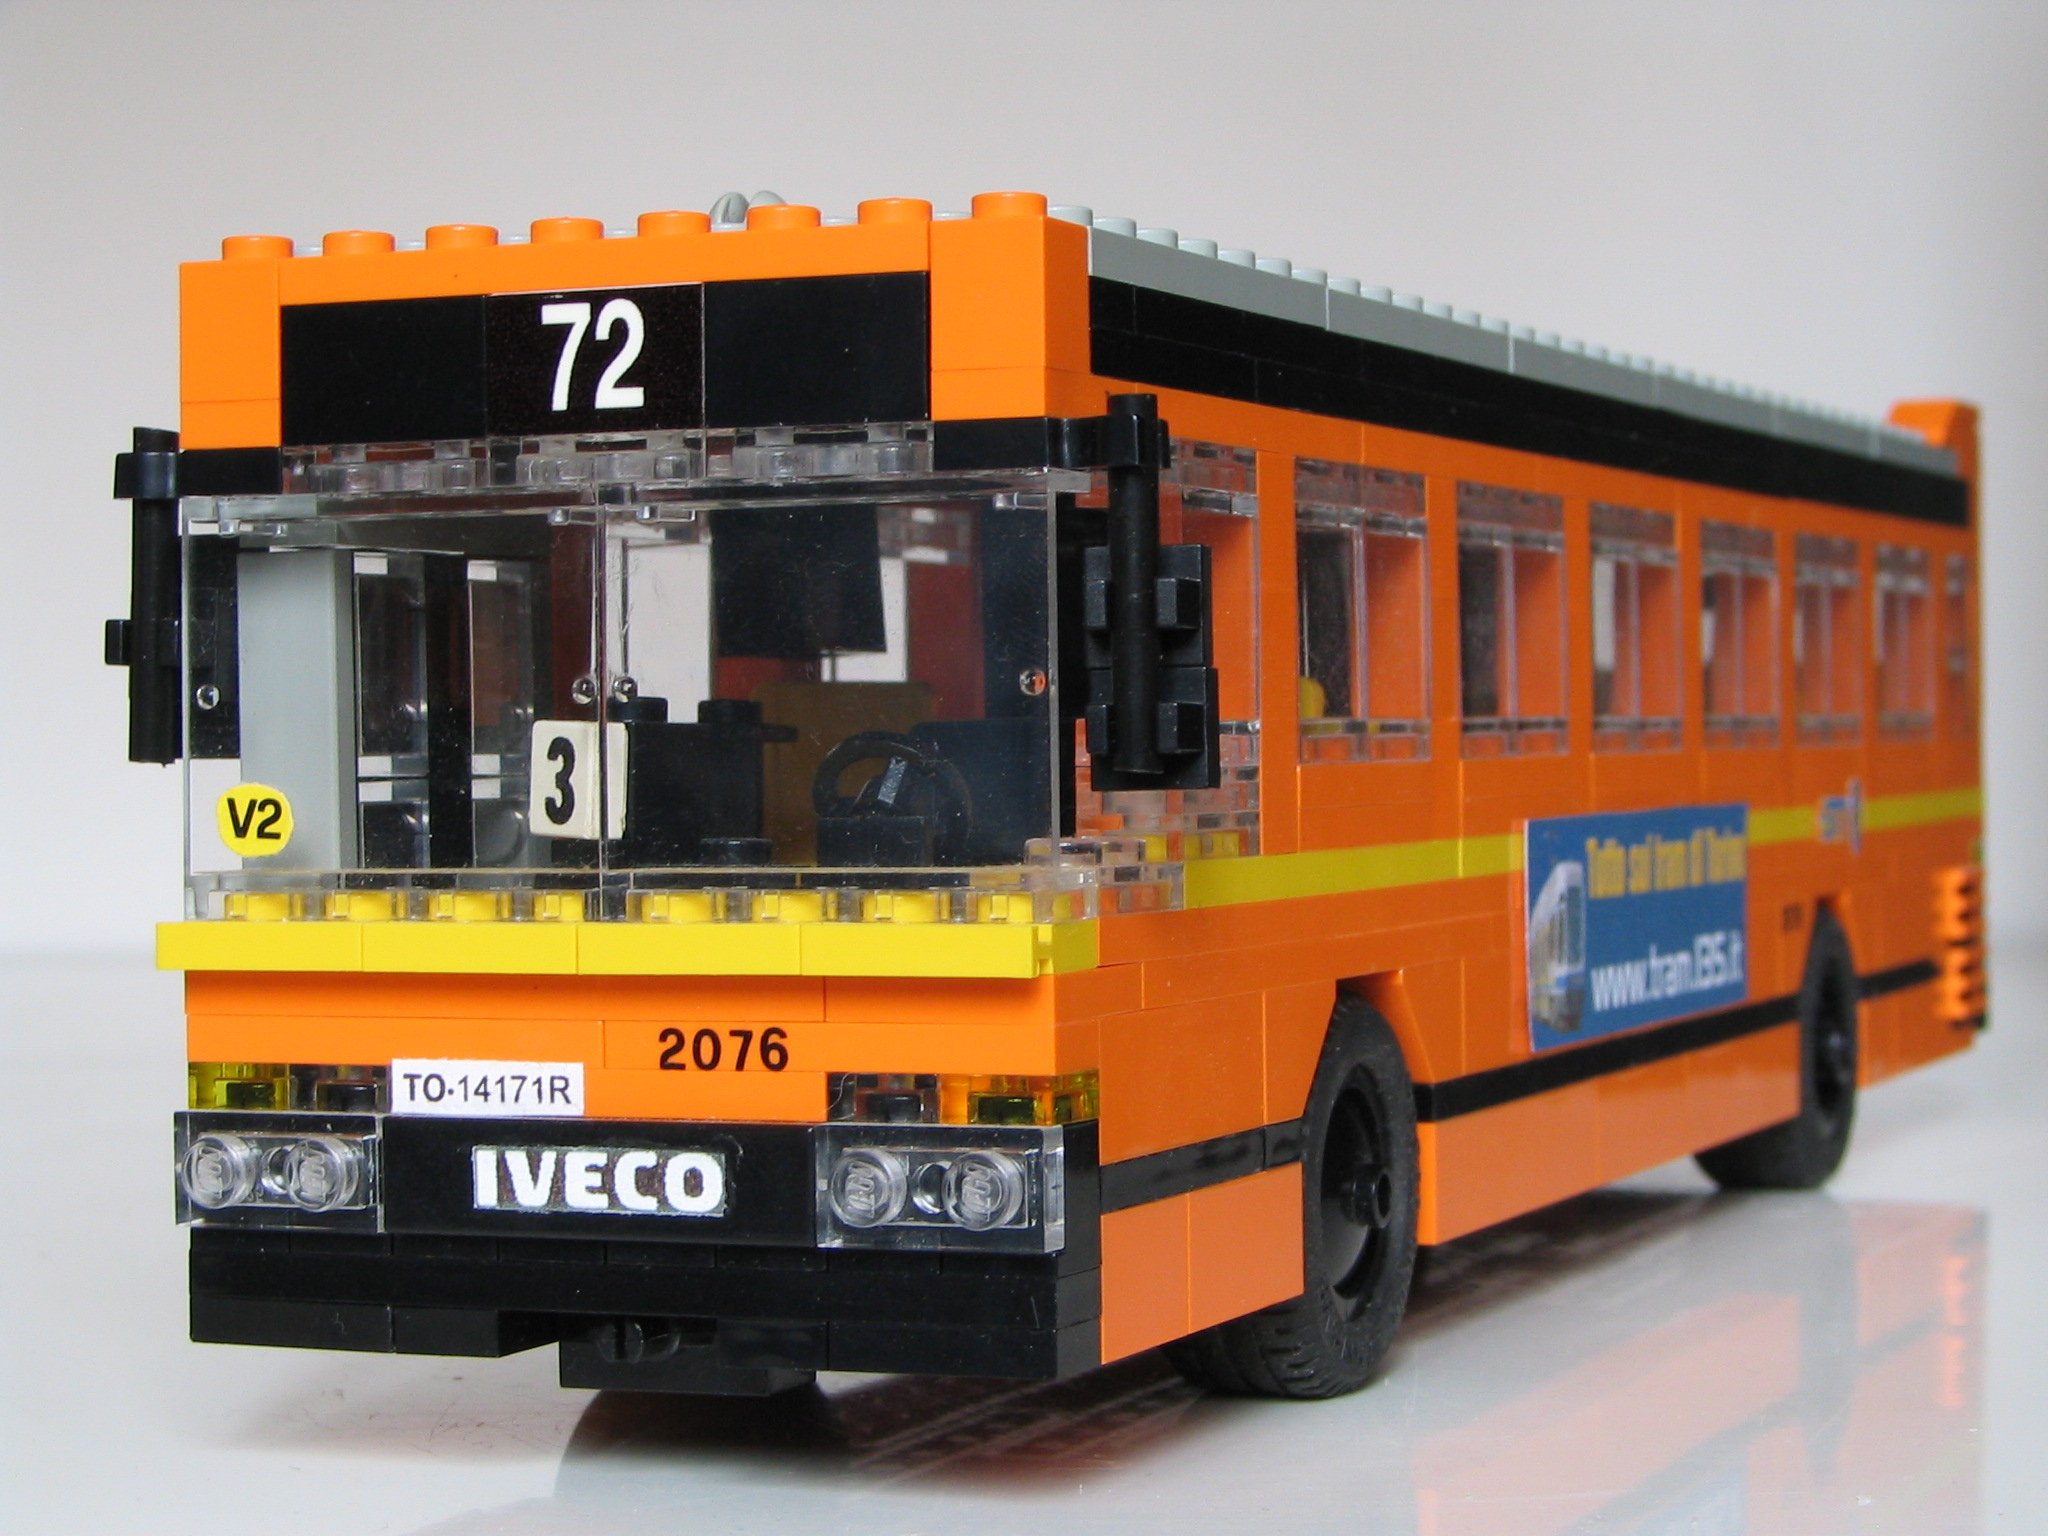 iveco006.jpg